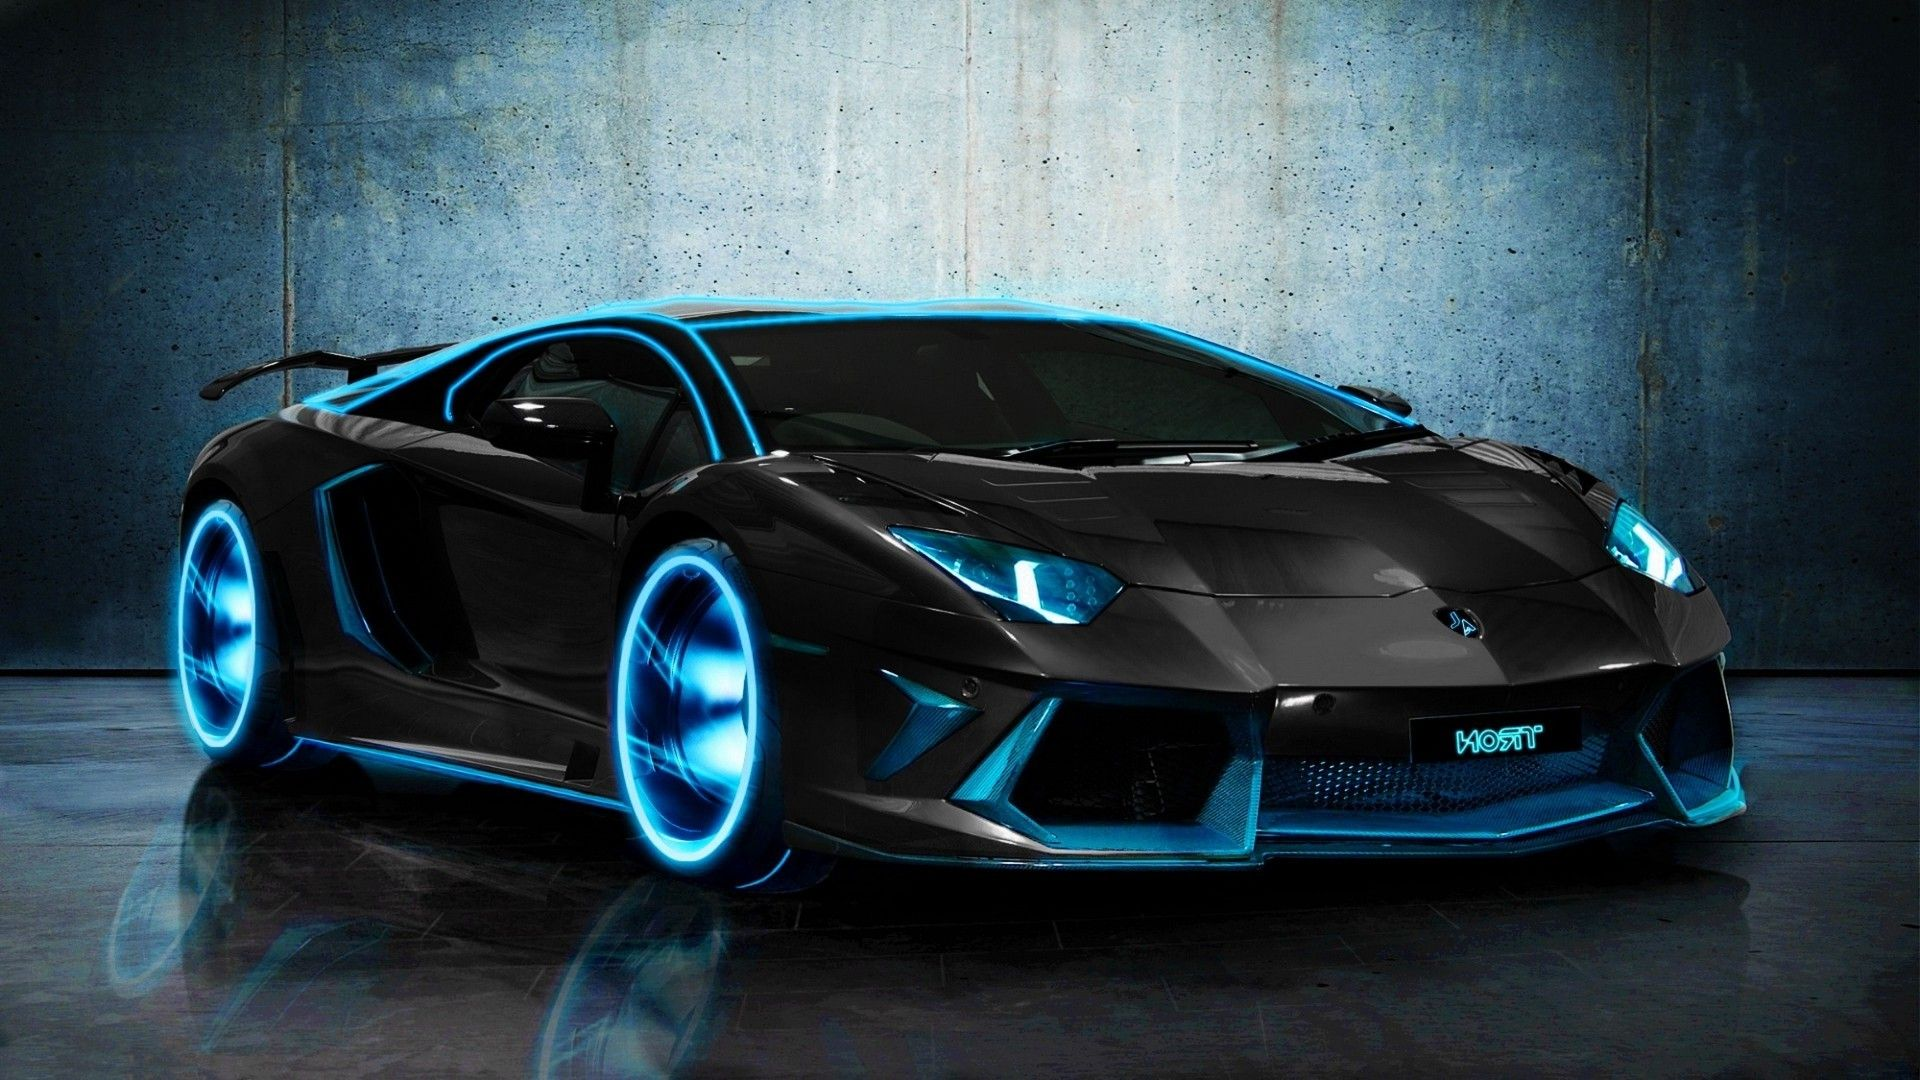 special concept lamborghinis choosed for simply stunning lamborghini car wallpapers check out